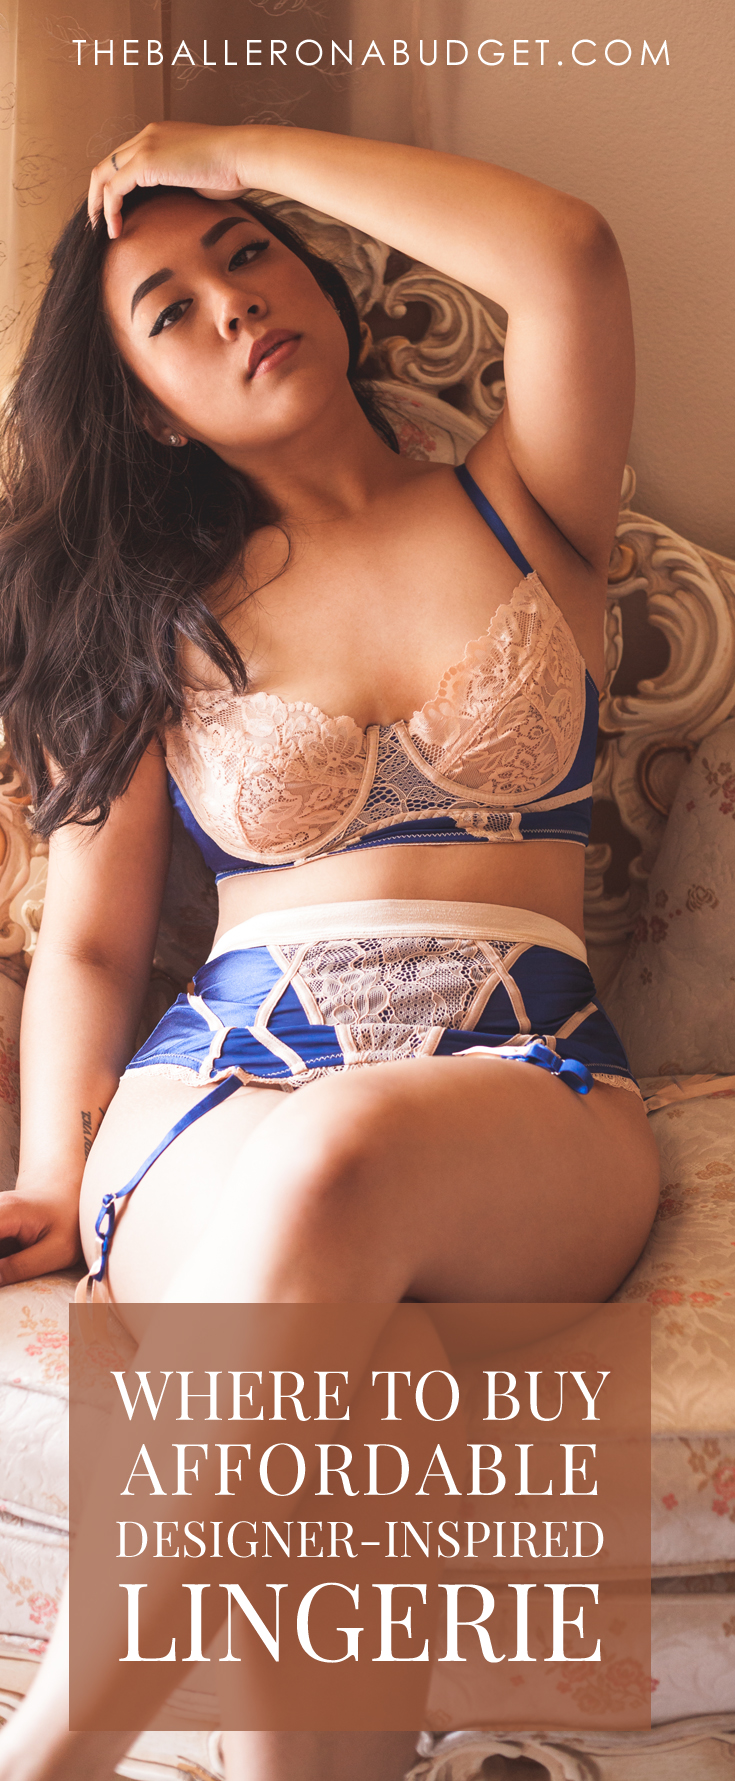 Looking for affordable lingerie to add to your collection? Check out some of my favorite budget-friendly intimates from Yandy. From Bordelle-inspired strappy numbers to lacey La Perla-inspired pieces, you'll find the perfect lingerie piece here. - www.theballeronabudget.com